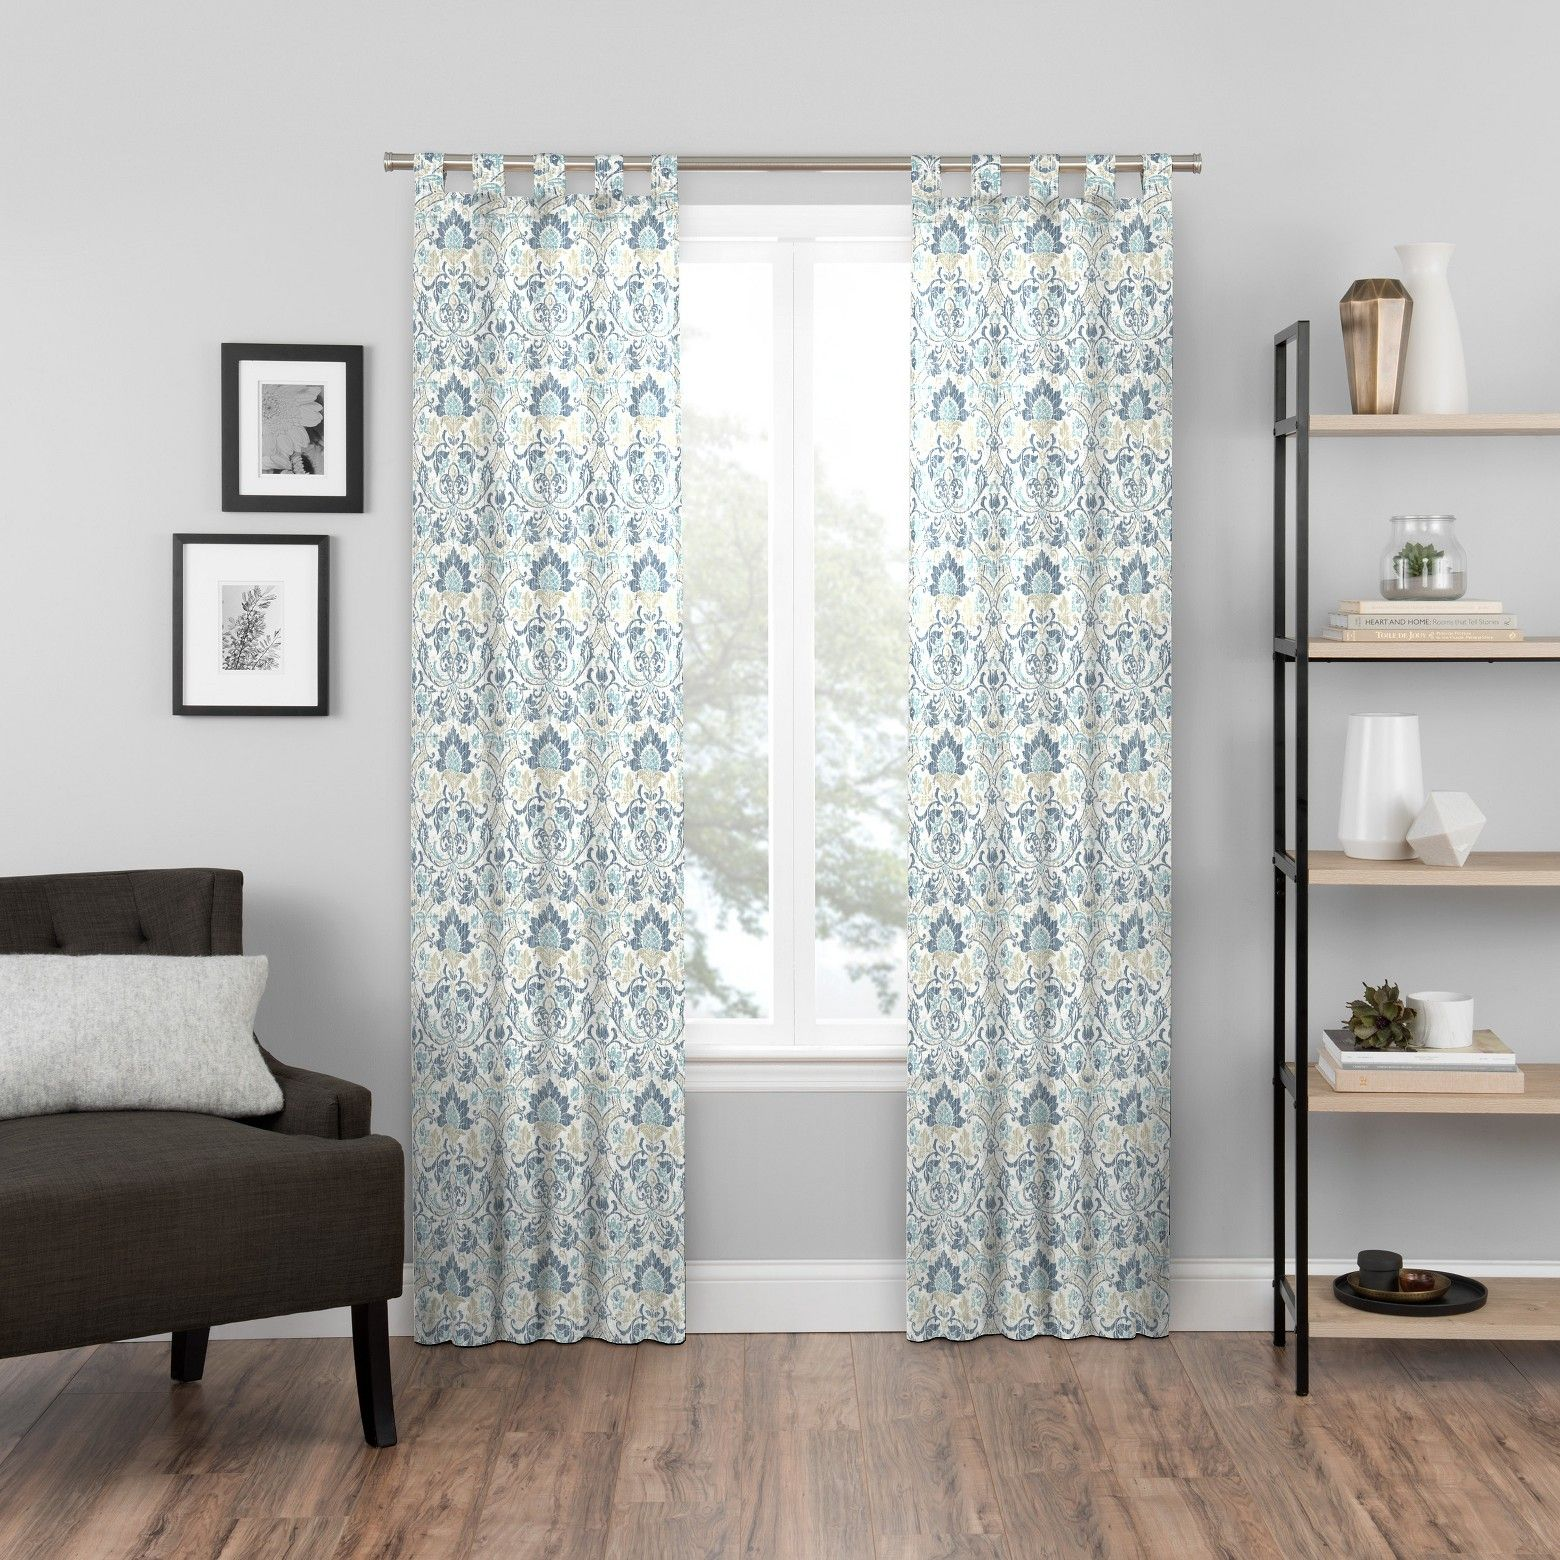 Pairs to Go Halford   Target and Sunroom